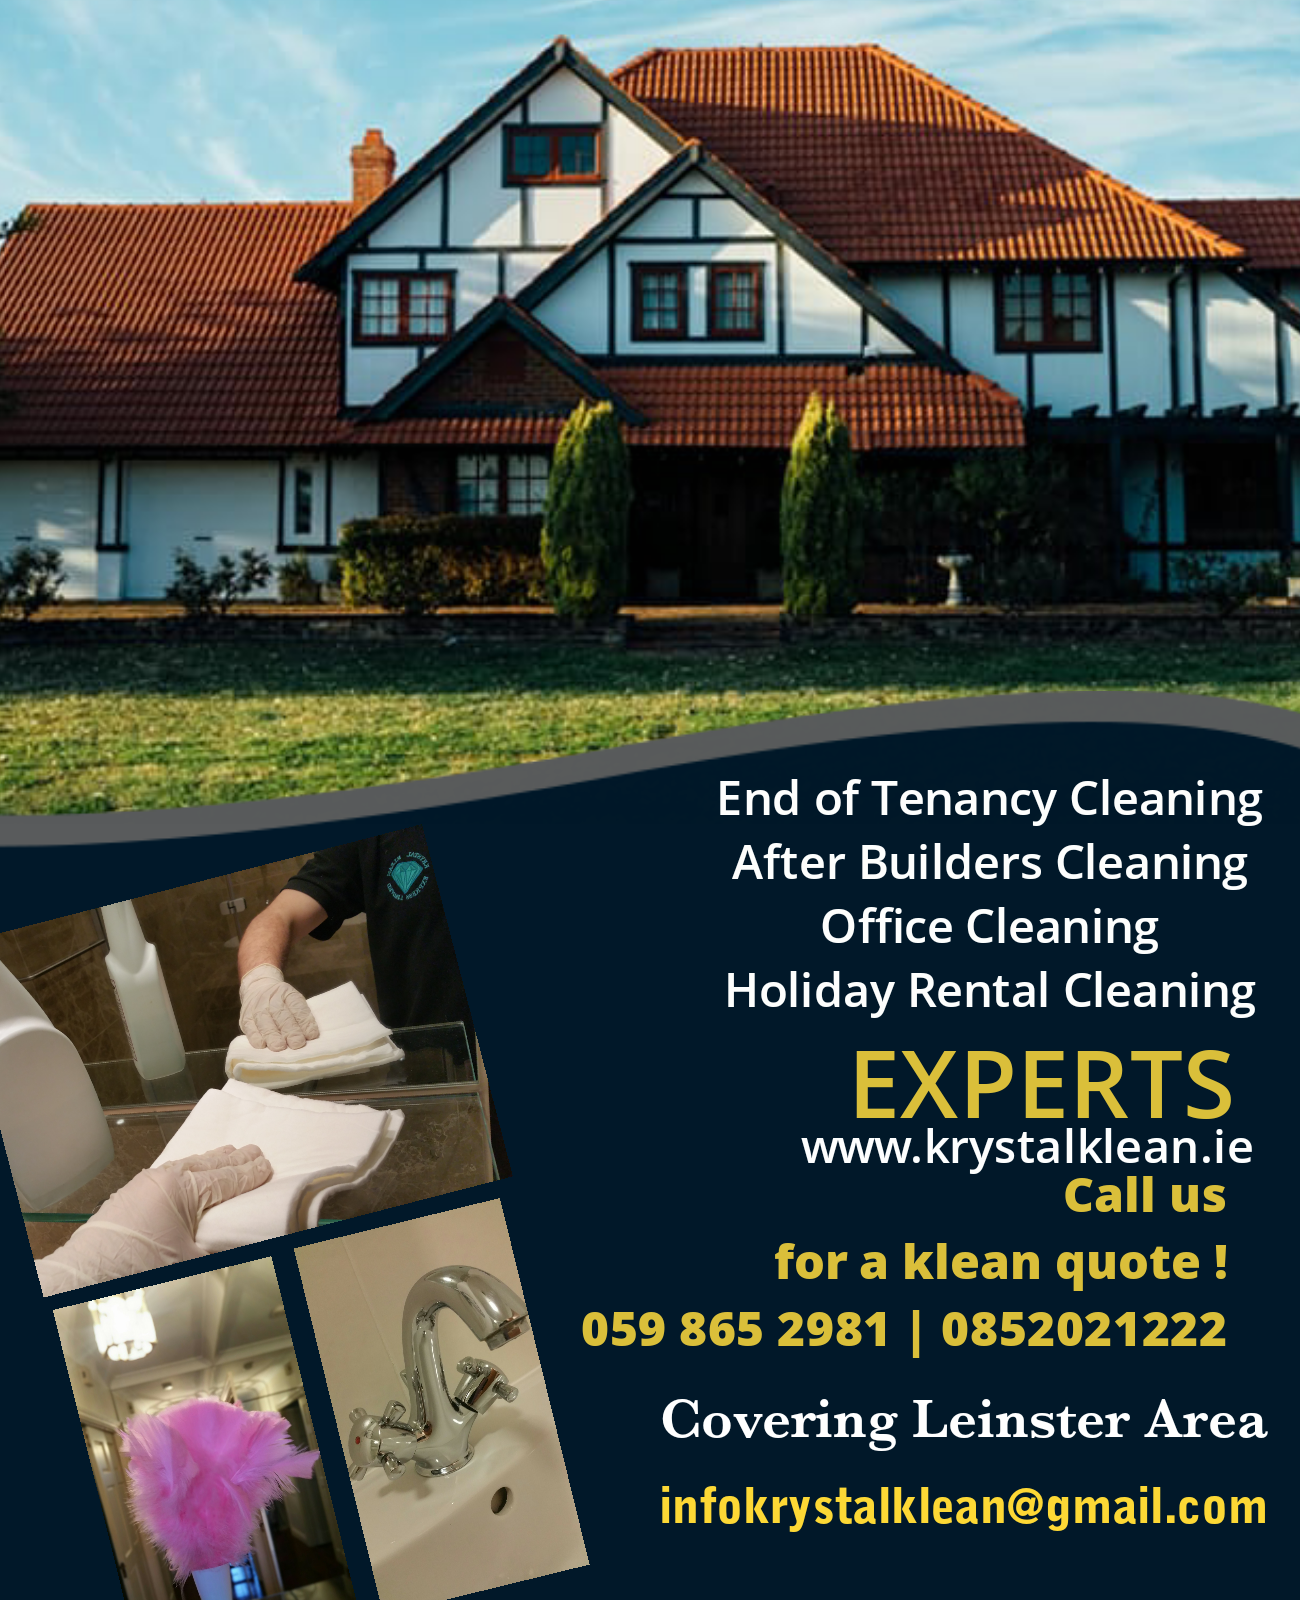 After Builder Cleaning Sandymount End of Tenancy Cleaning Sutton End of Tenancy Cleaning Ballsbridge